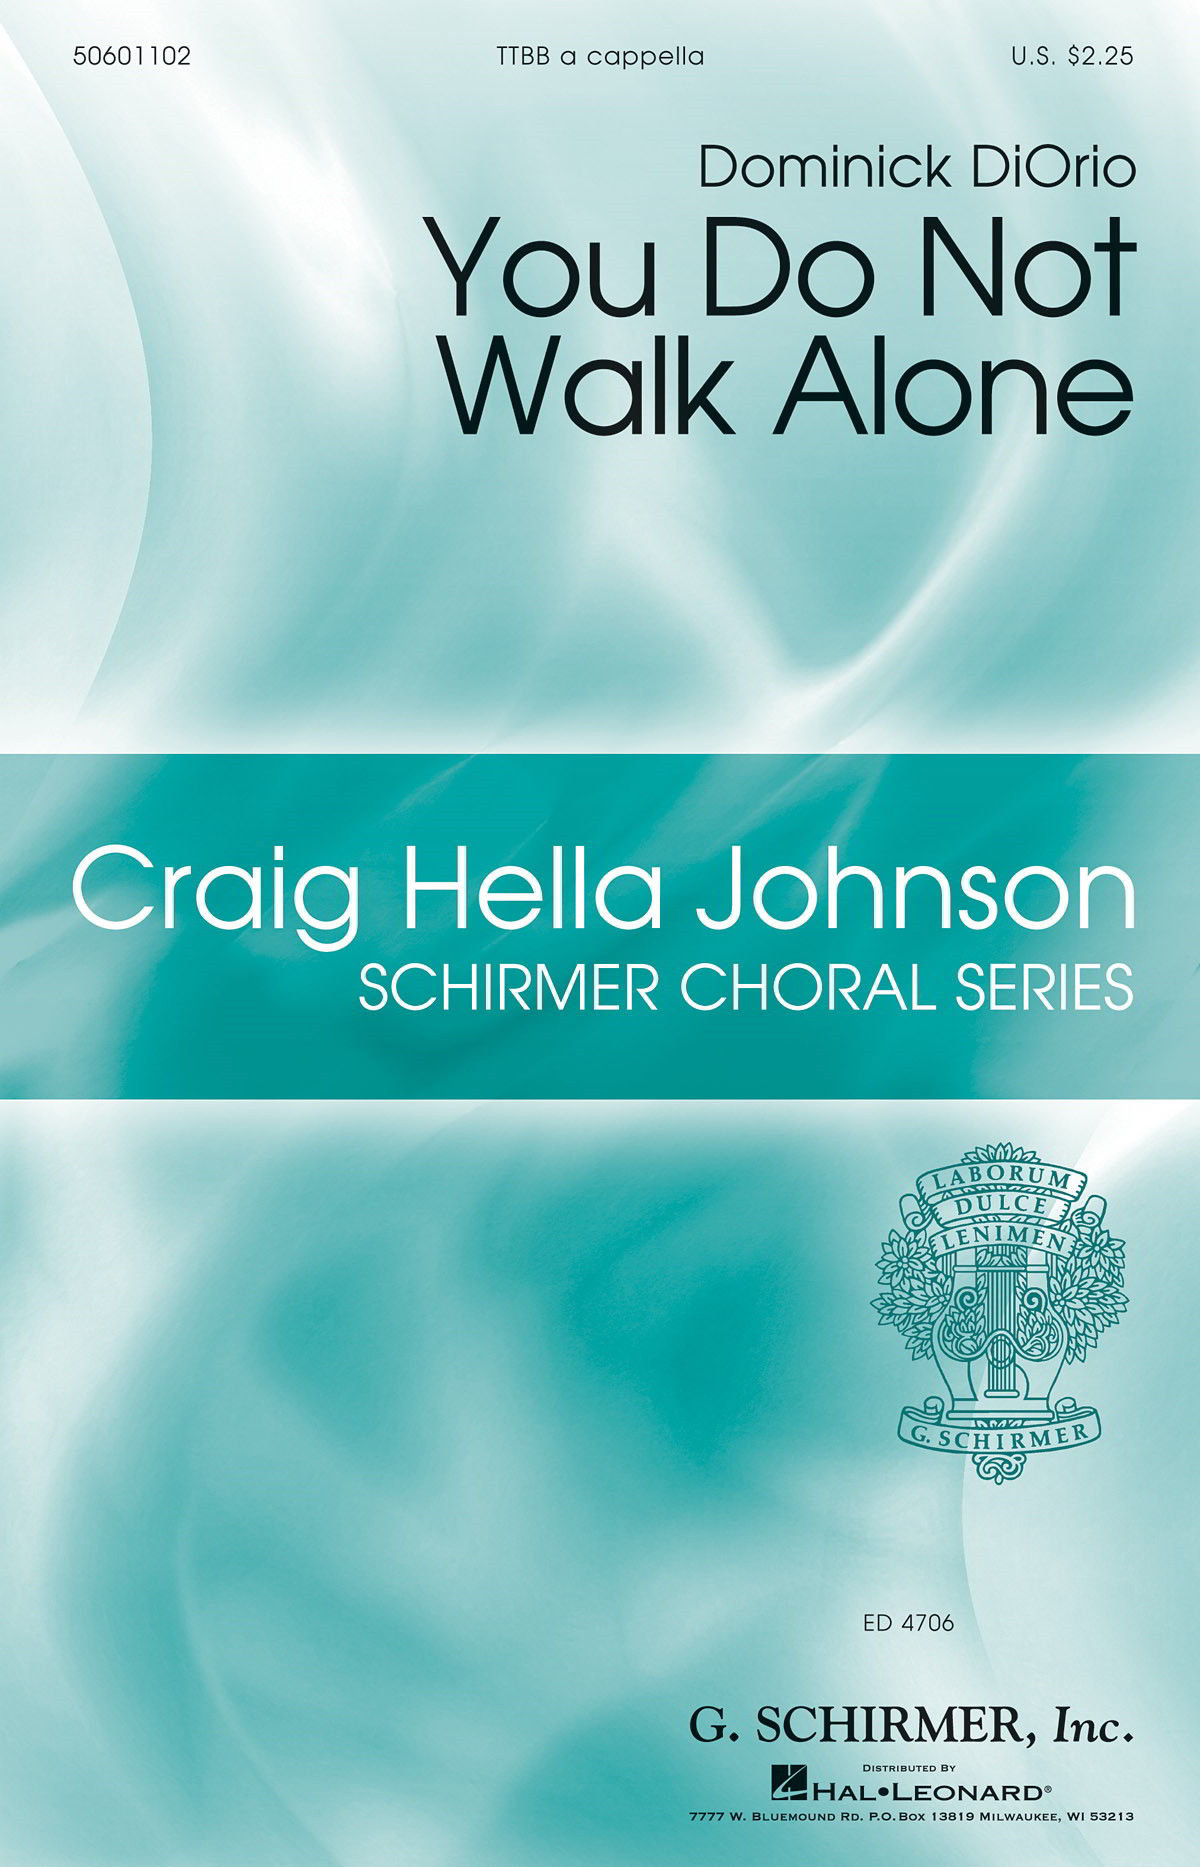 DiOrio: You Do Not Walk Alone TTBB published by Schirmer